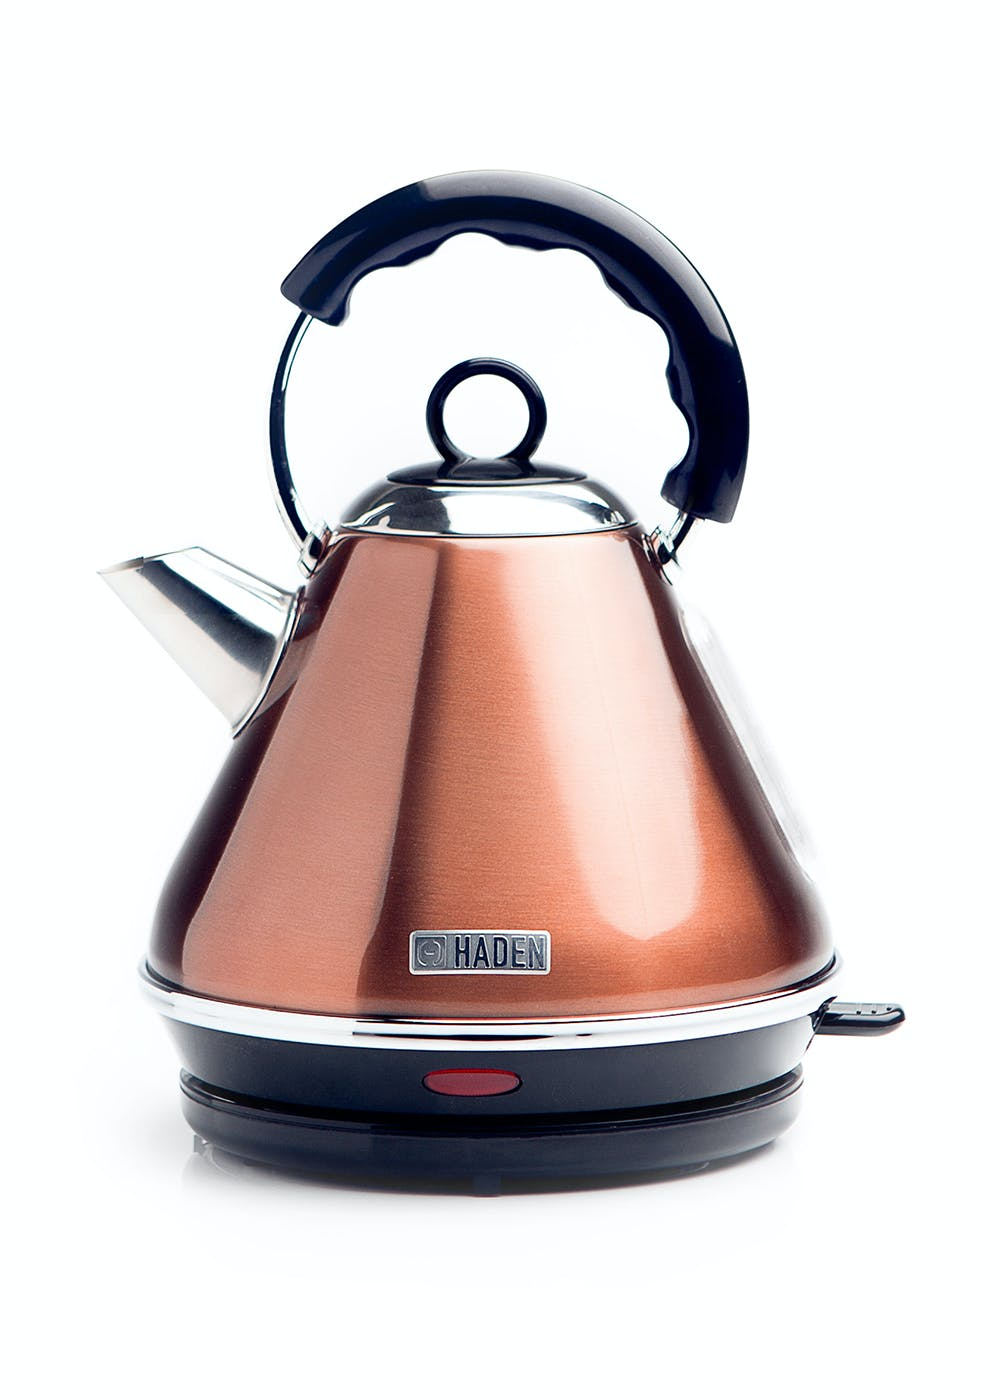 Best Price On Robertson Premier Suites By Subhome In Kuala: Haden Boston Pyramid Kettle (1.7L)